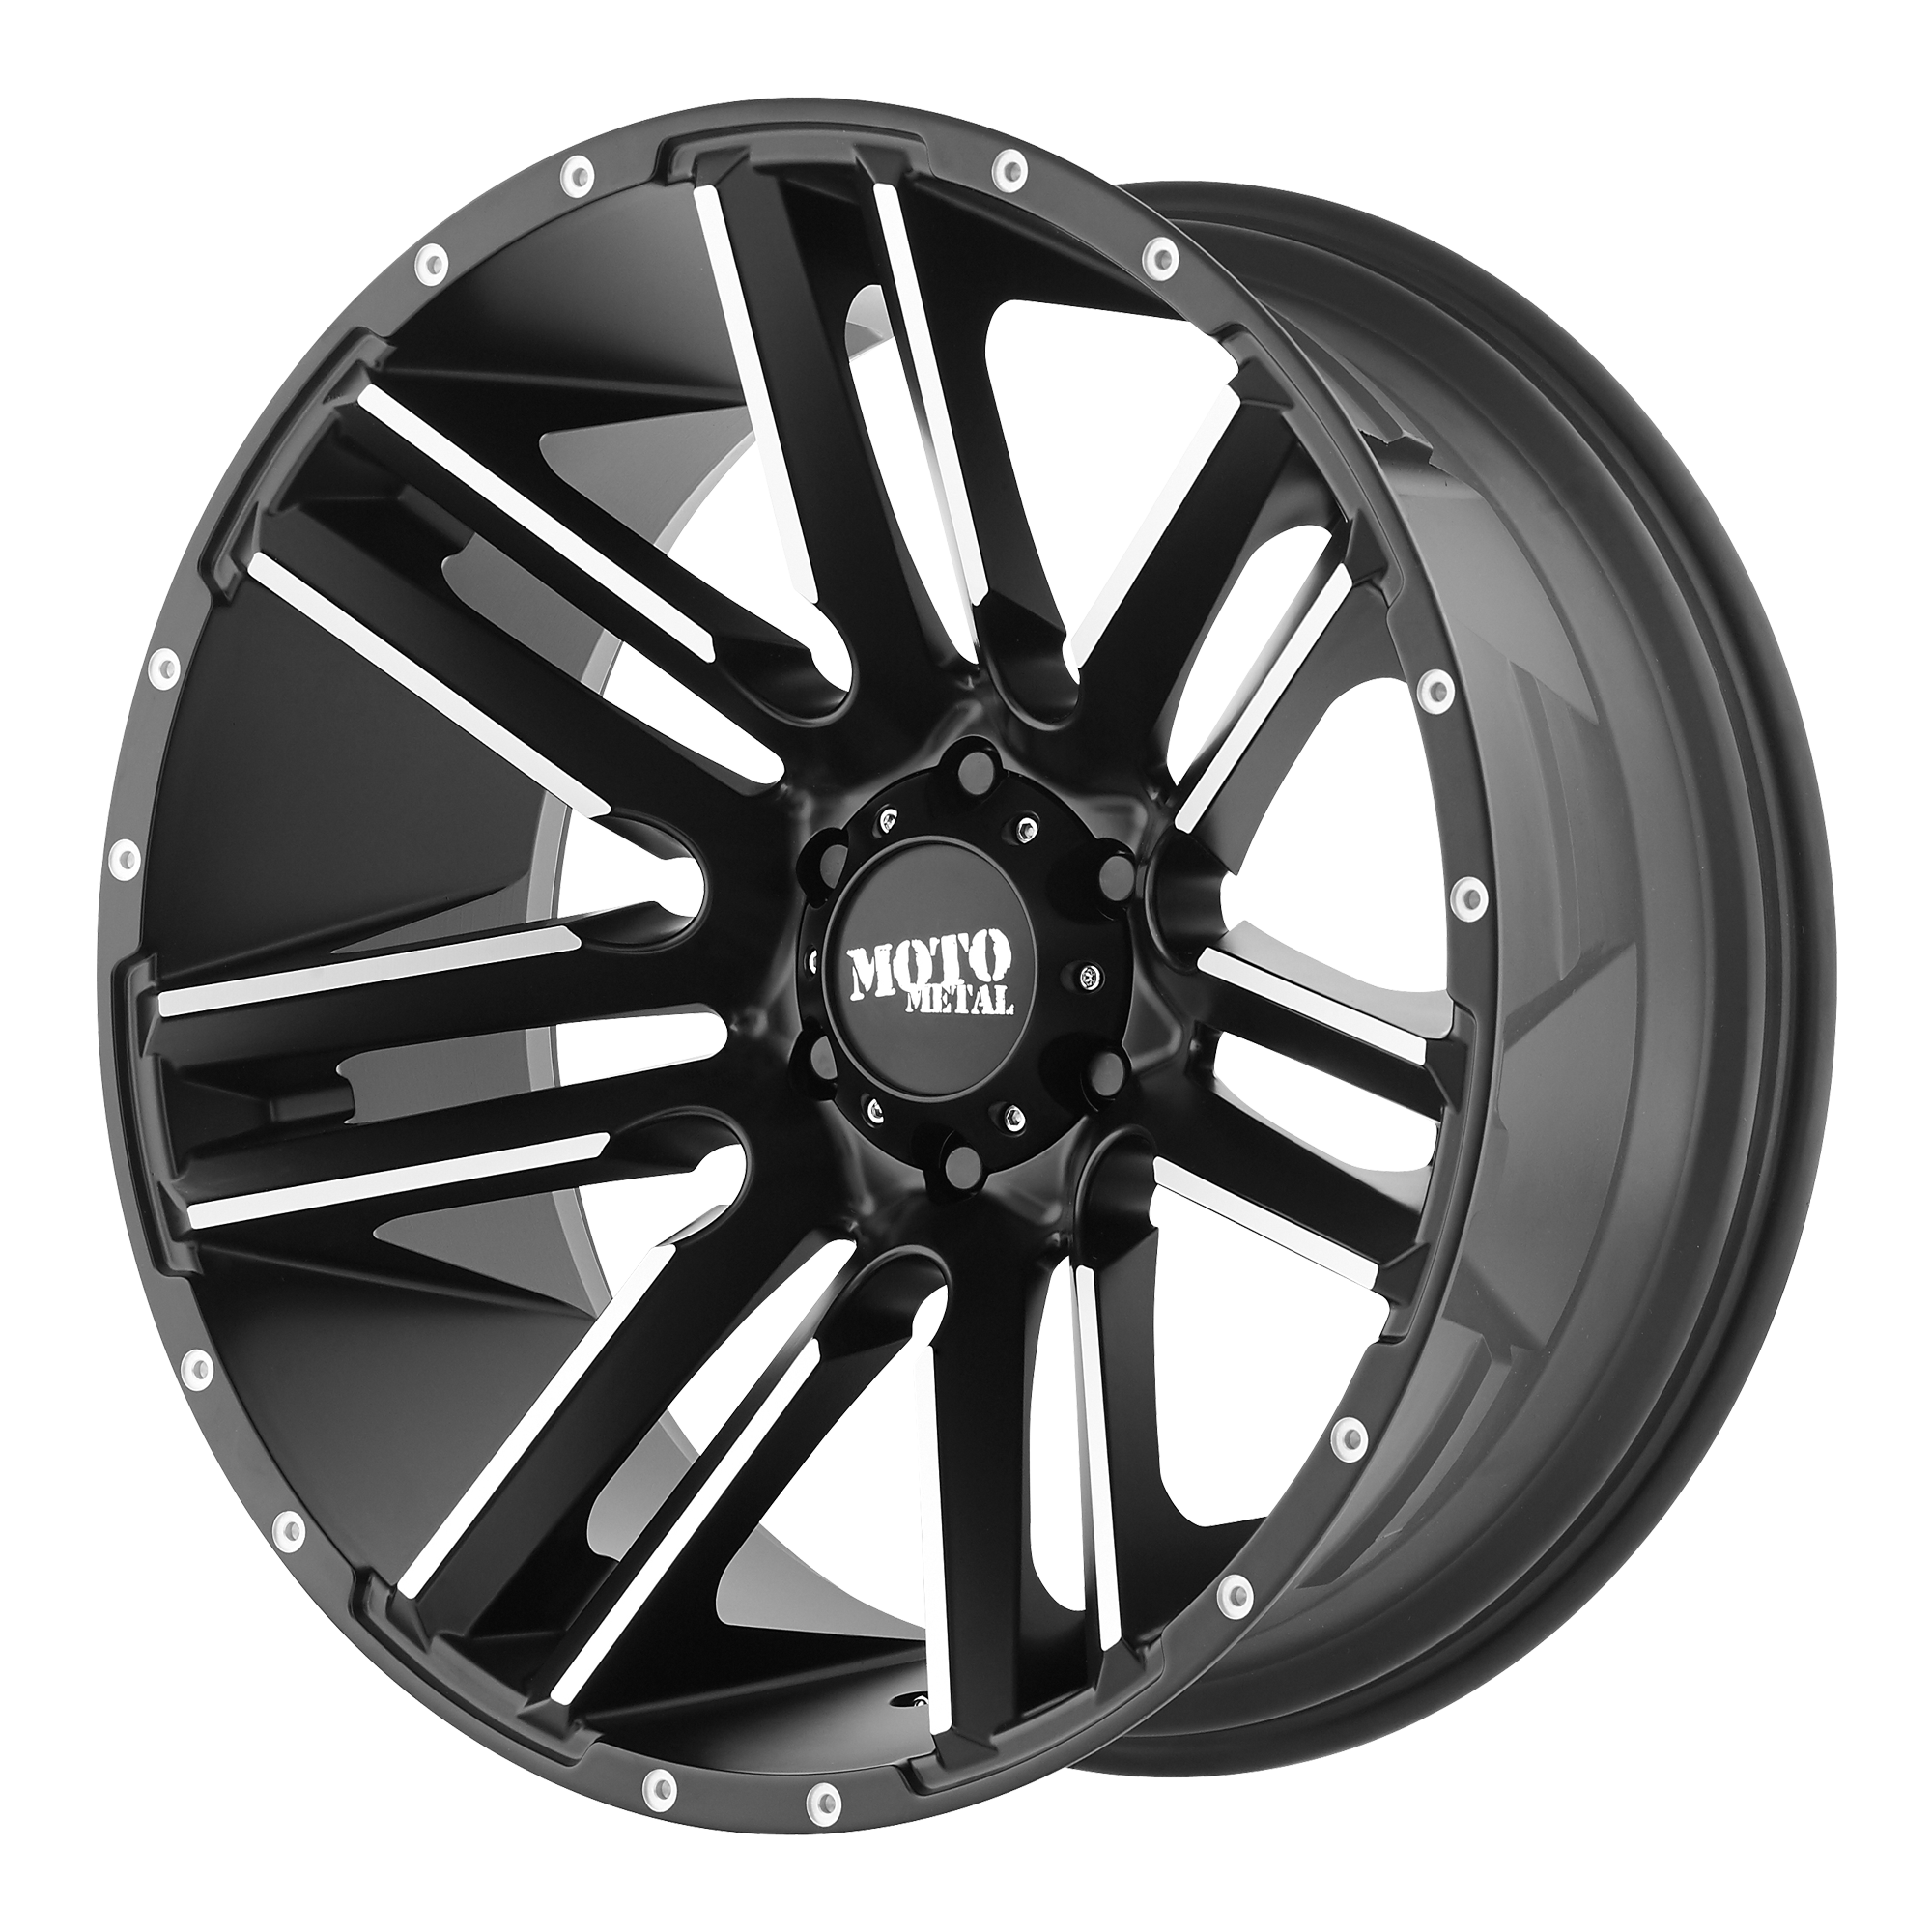 Moto Metal Offroad Wheels RAZOR Satin Black Machined